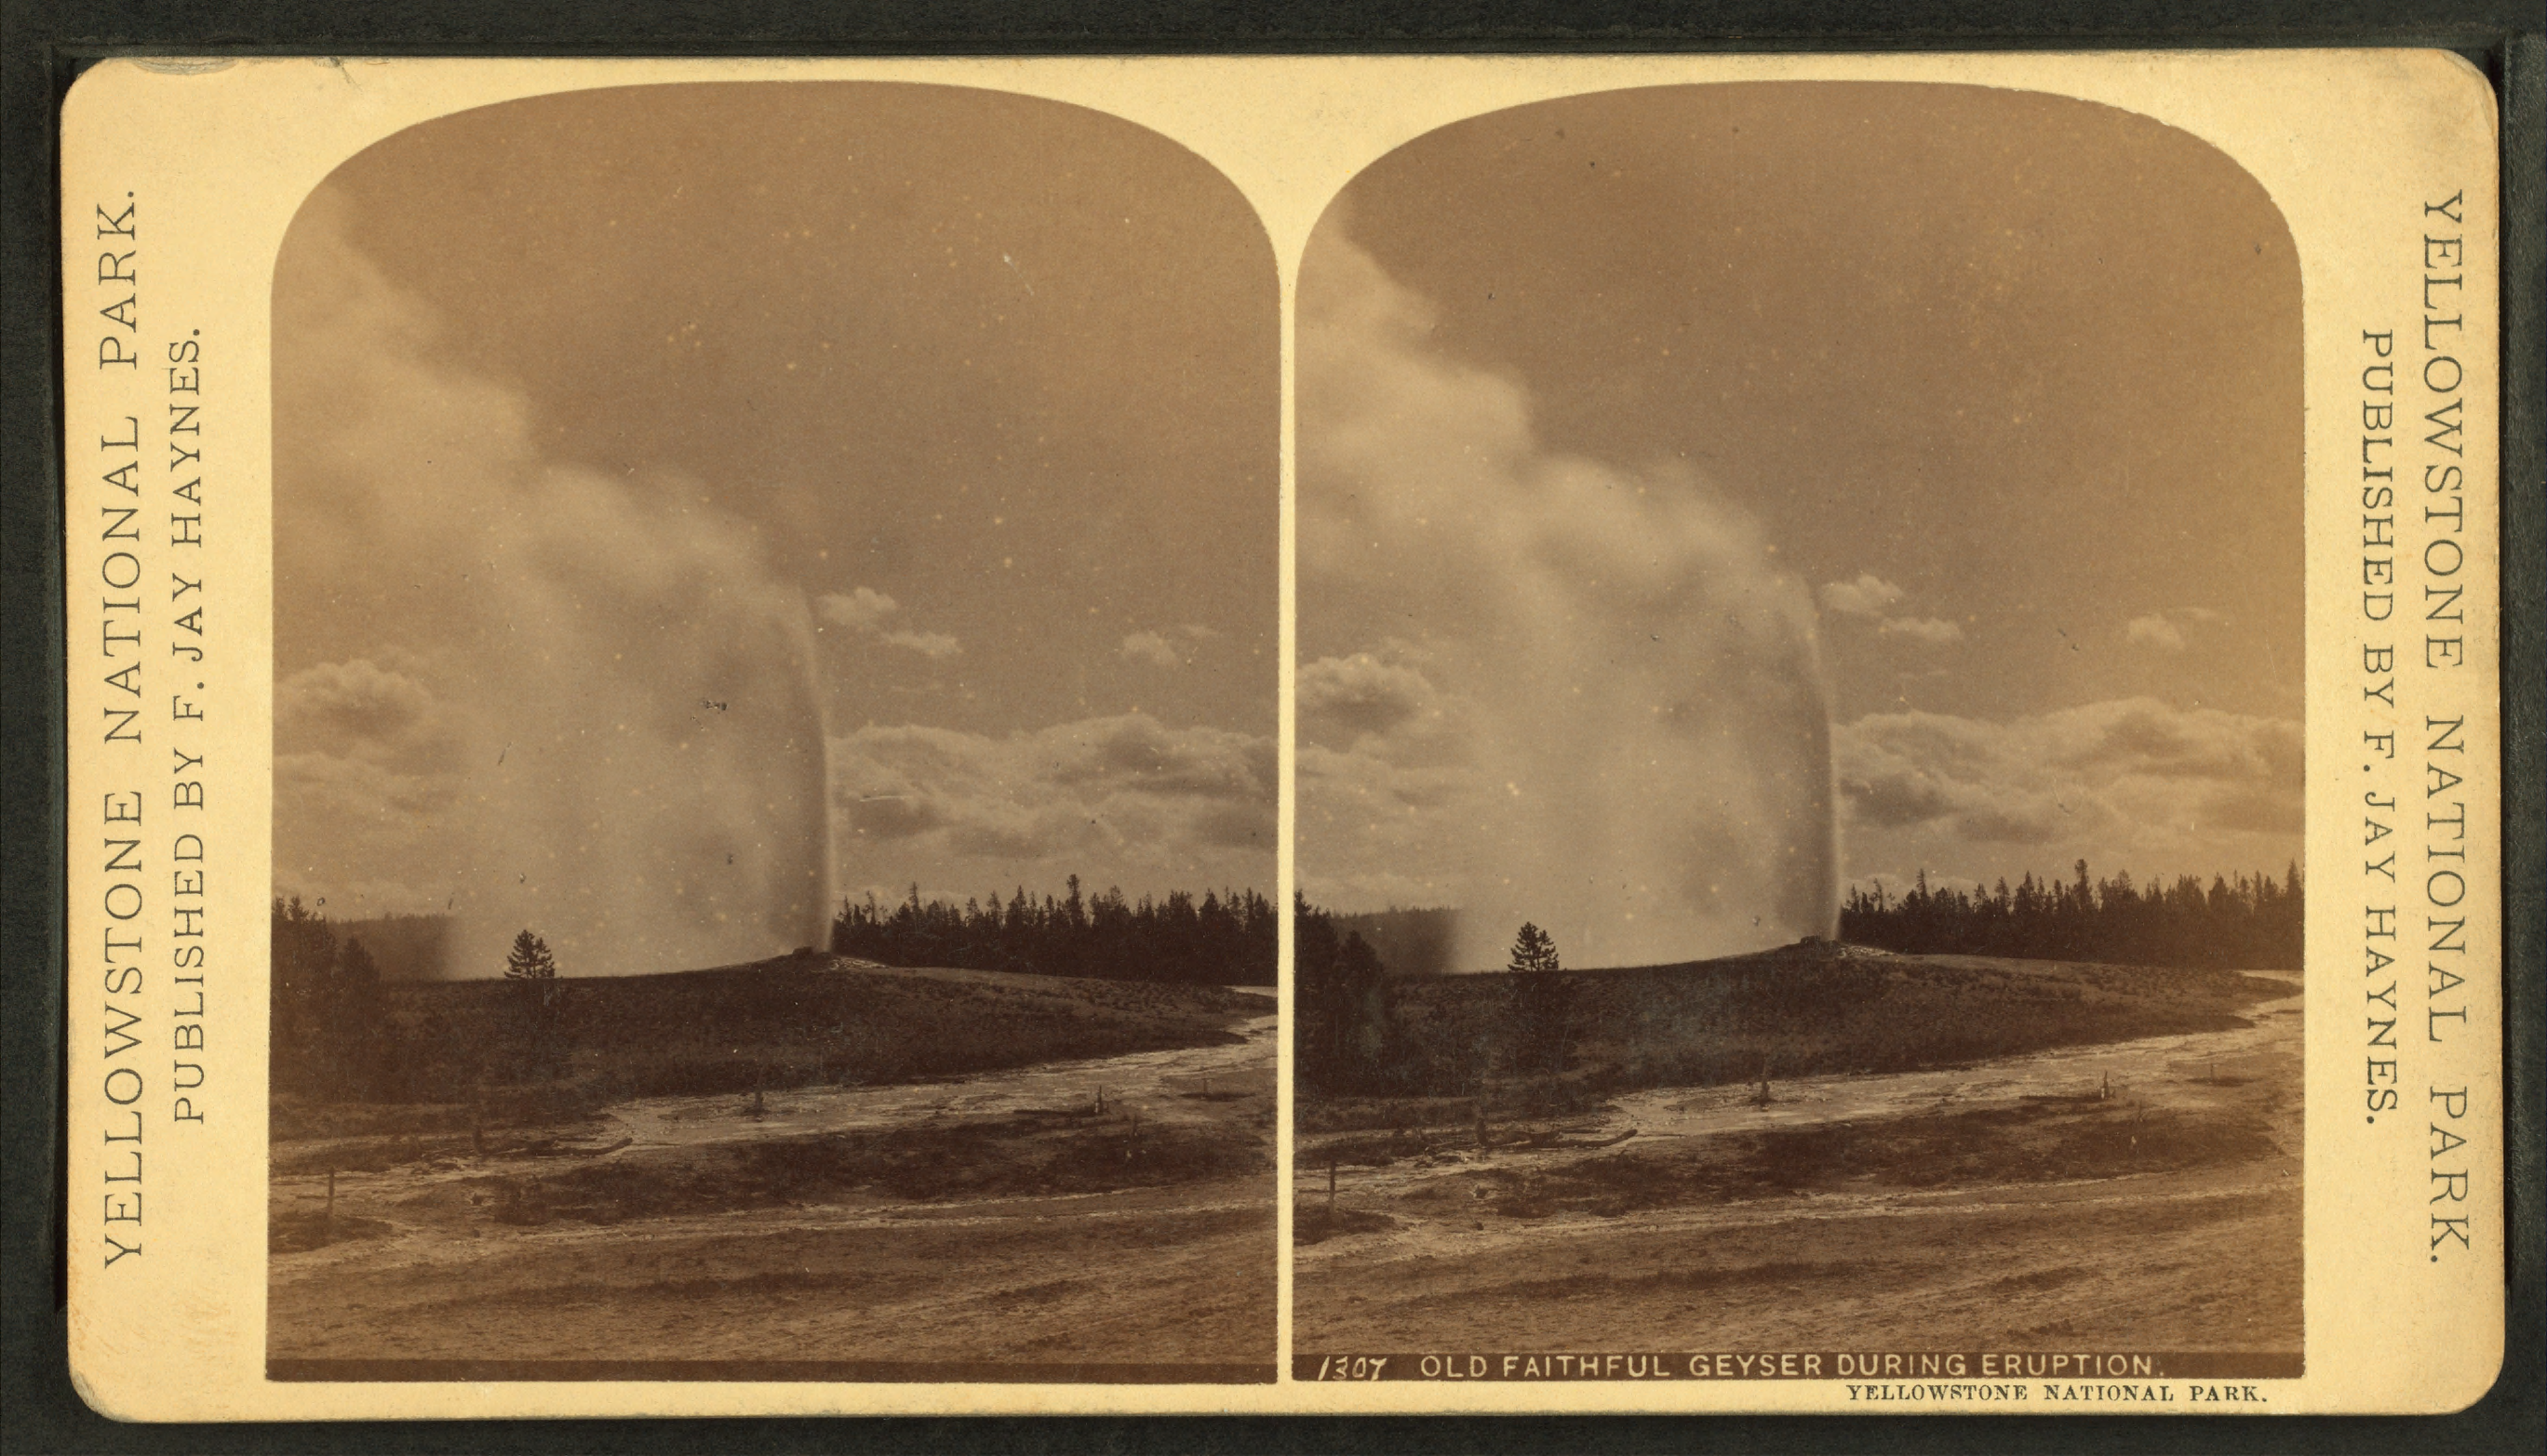 Old Faithful Geyser During Eruption Yellowstone National Park By Haynes Jay 29 How To Reduce Size Of